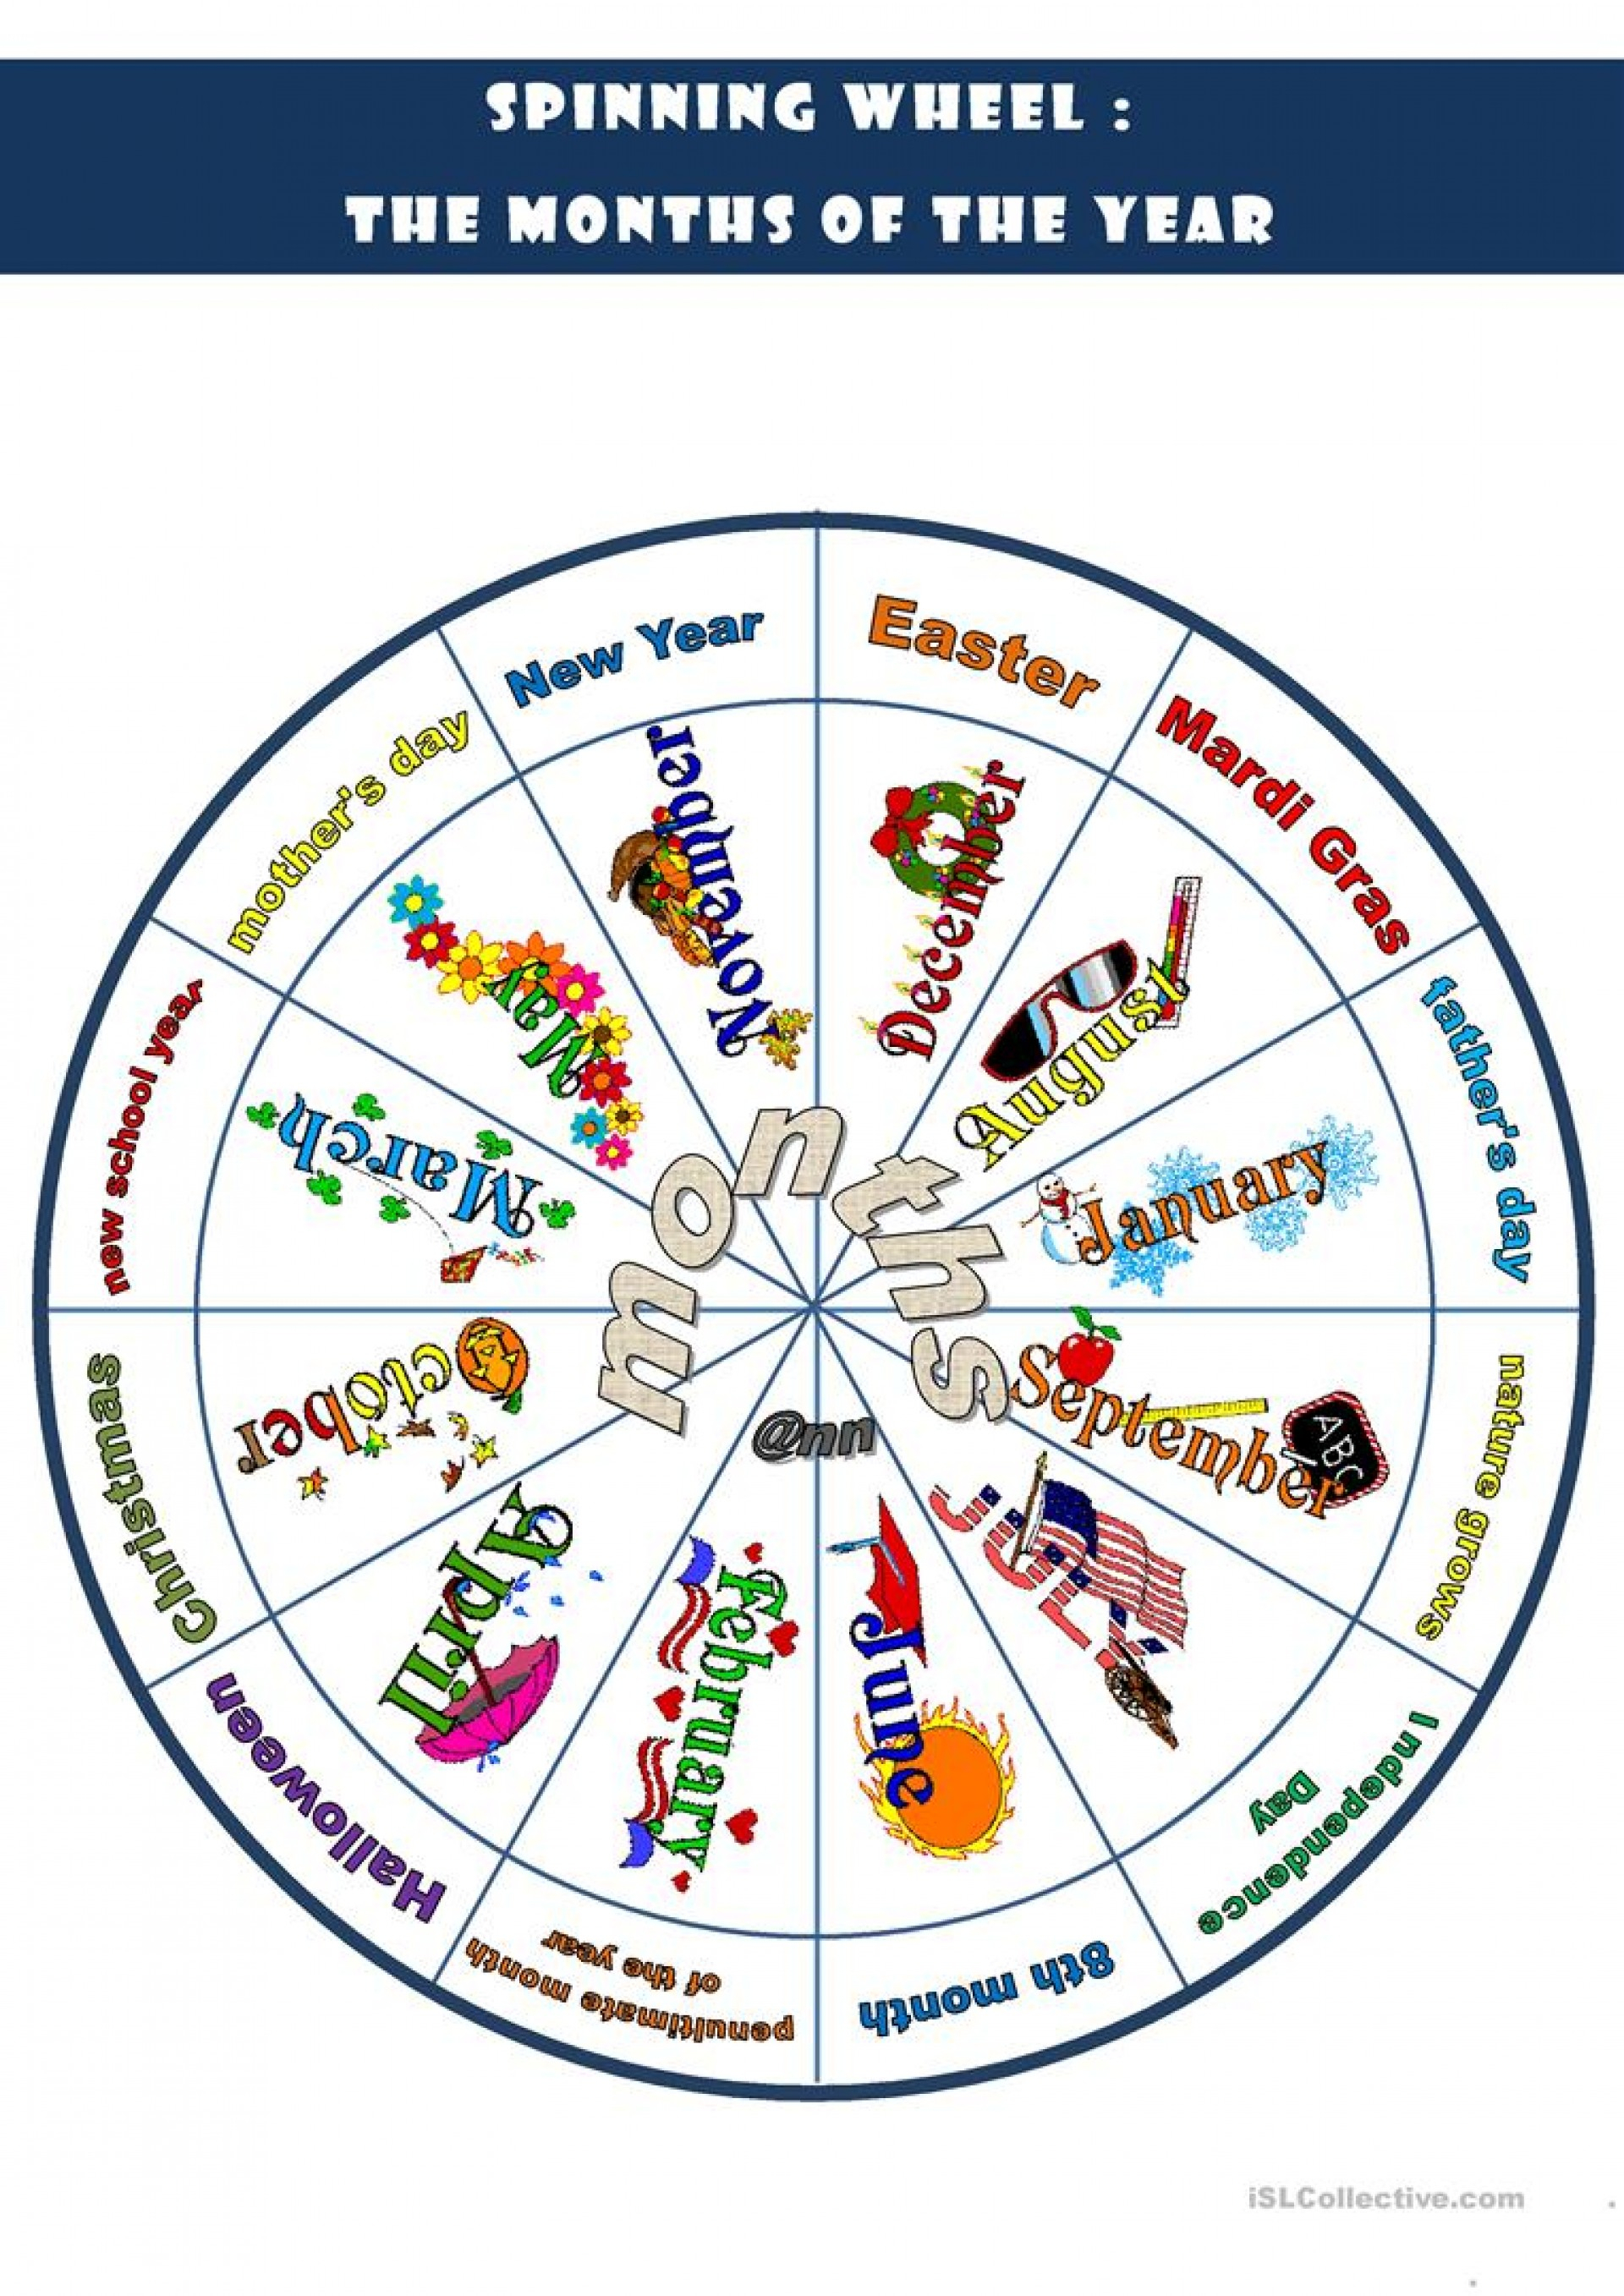 021 Printable Word Spinning Wheel The Months Of Year Games